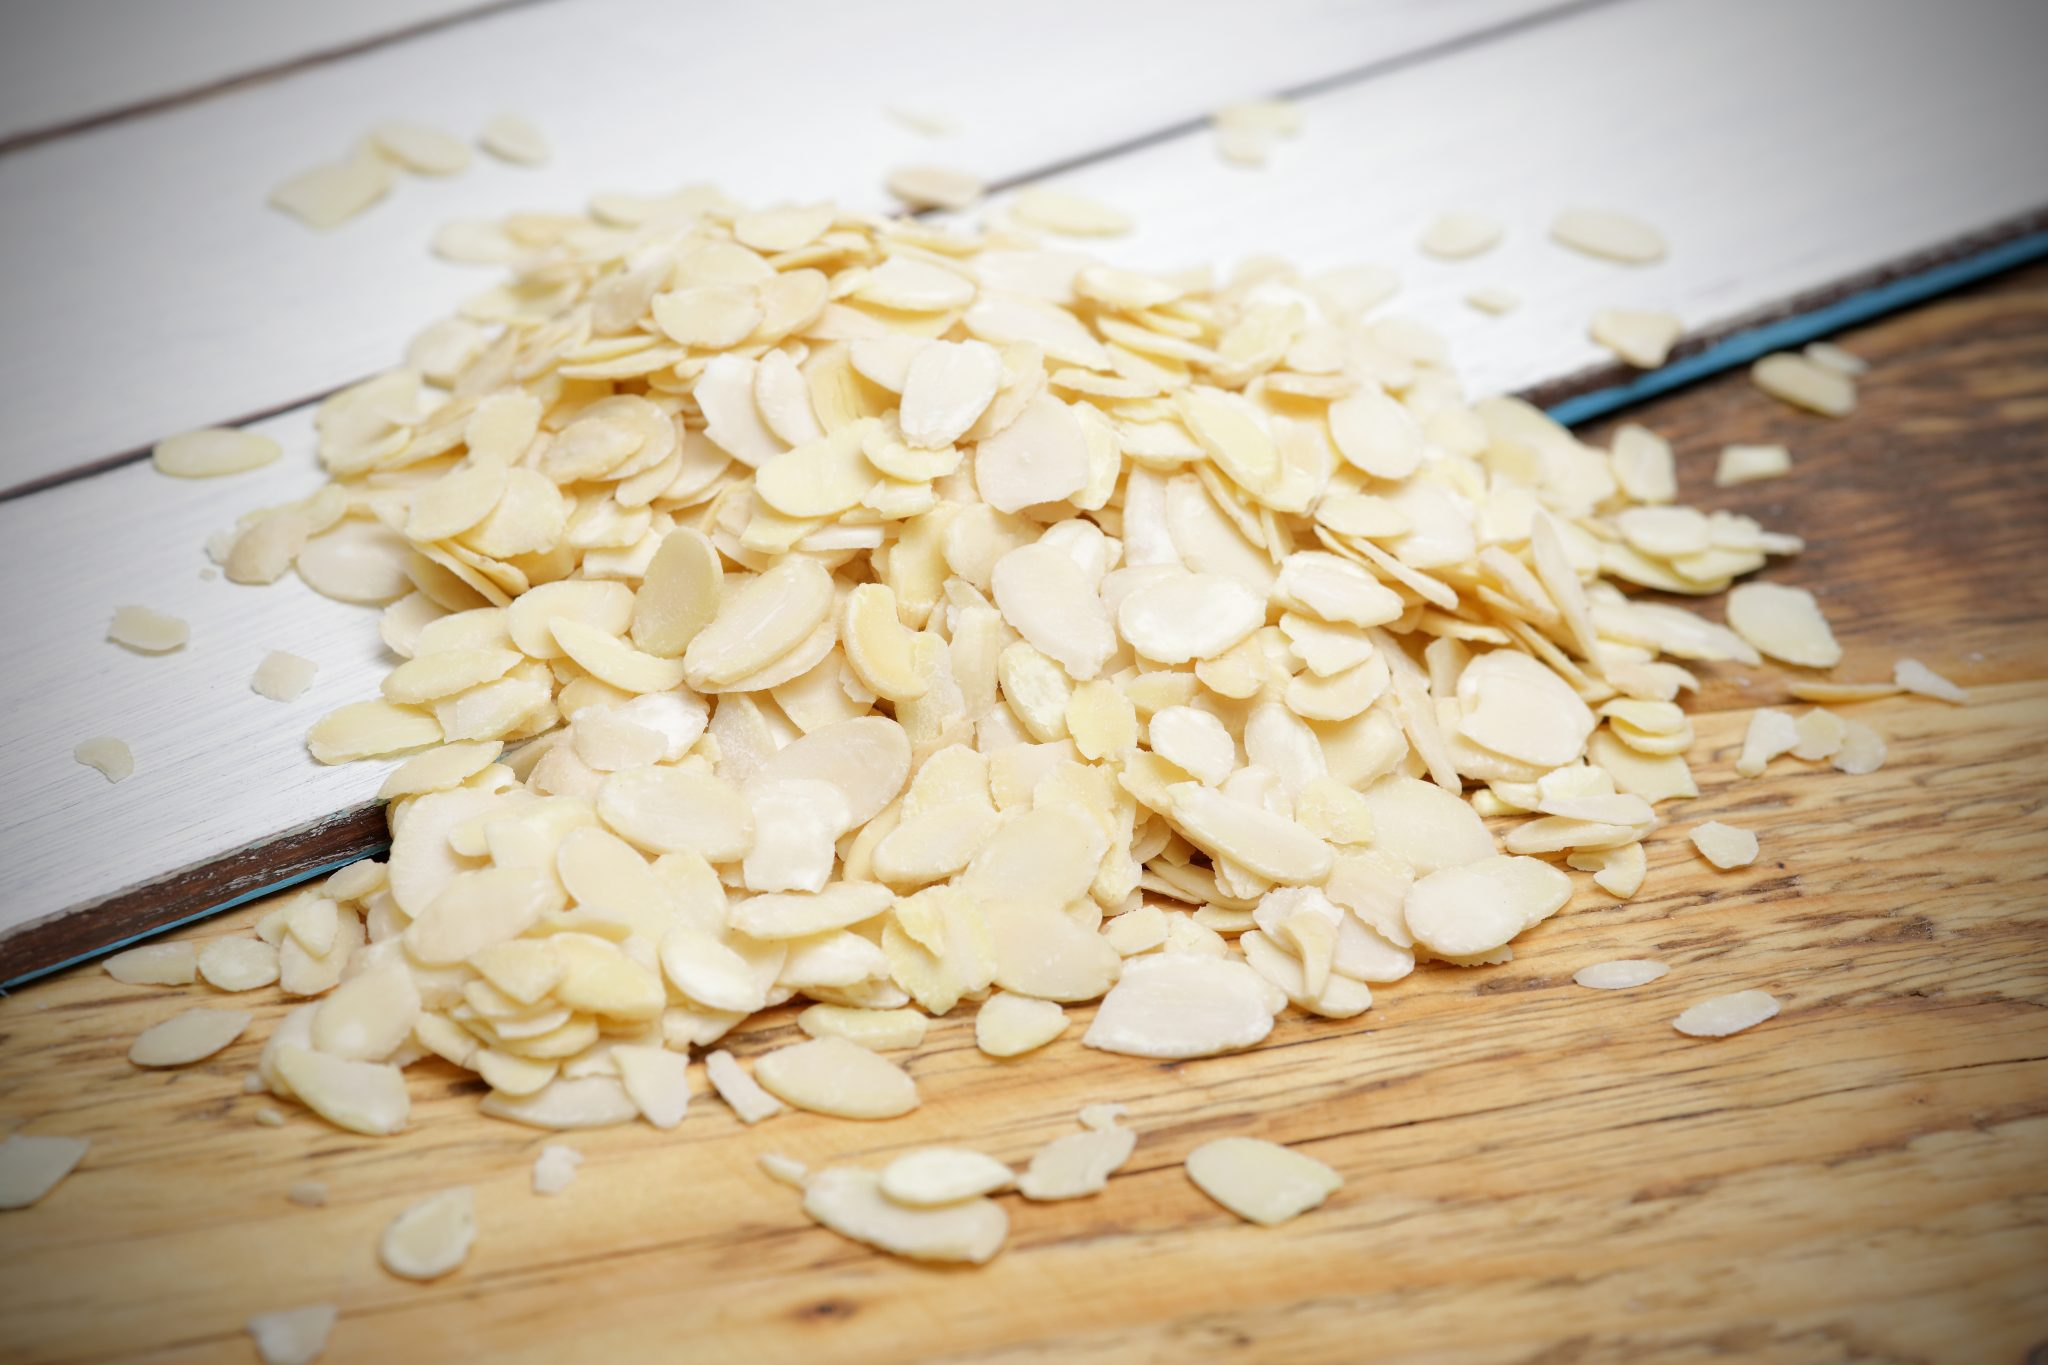 chandras blanched whole almonds